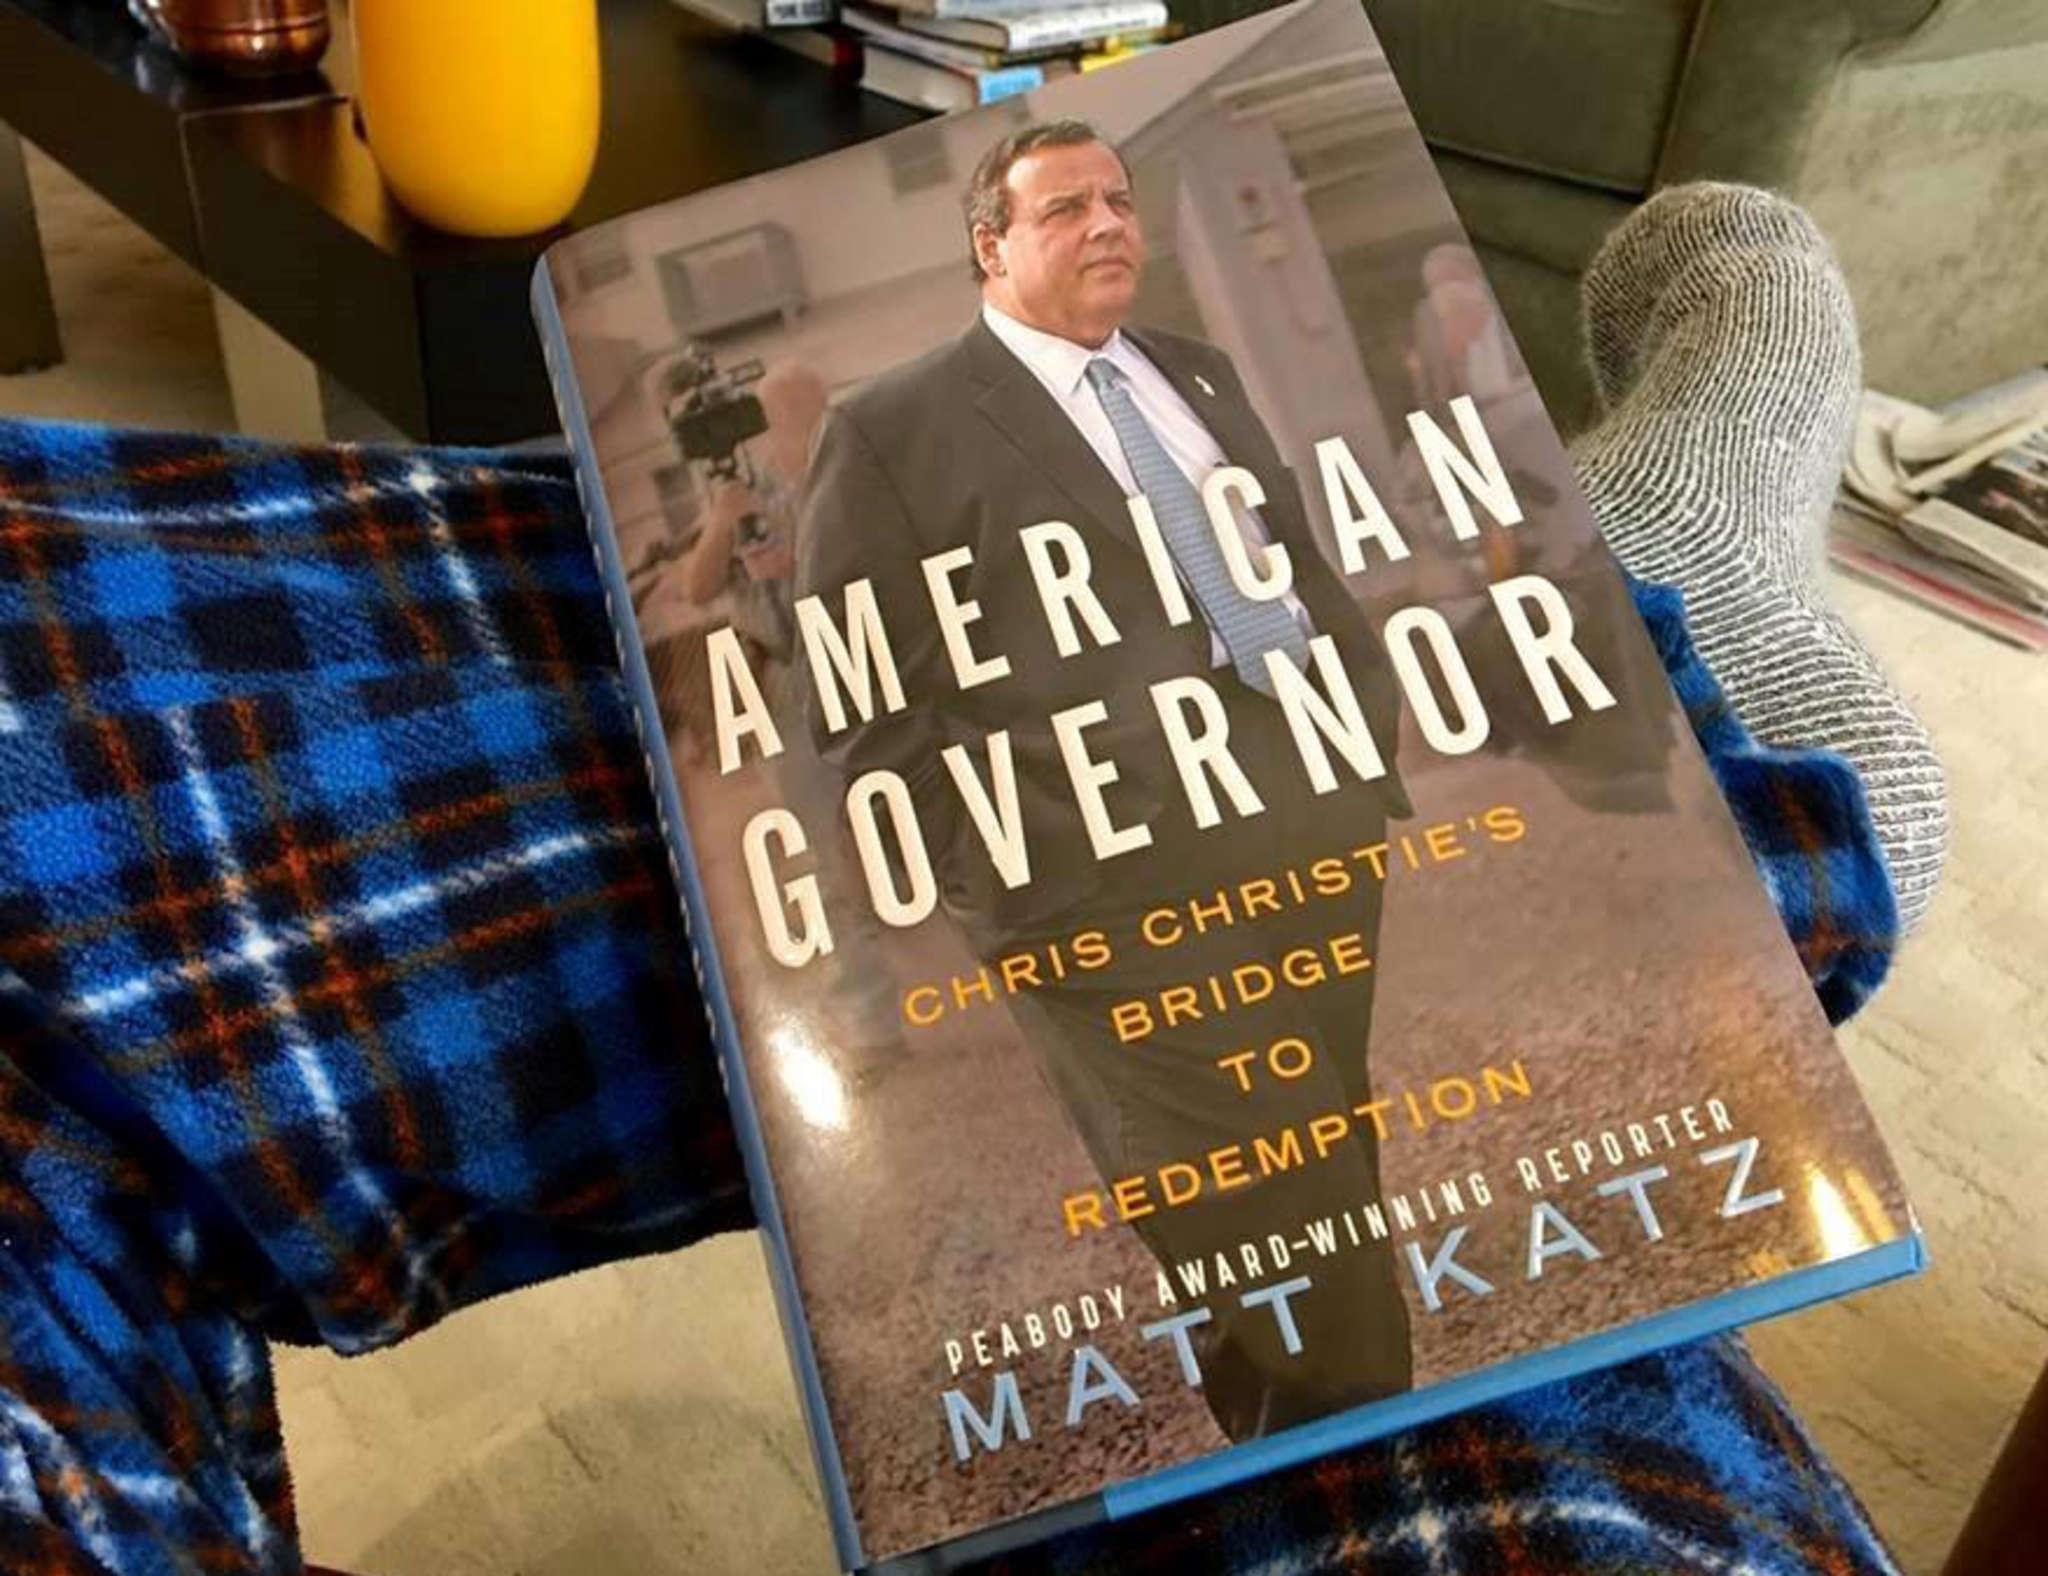 """American Governor - Chris Christie´s Bridge to Redemption,"" by Matt Katz, formerly an Inquirer reporter."